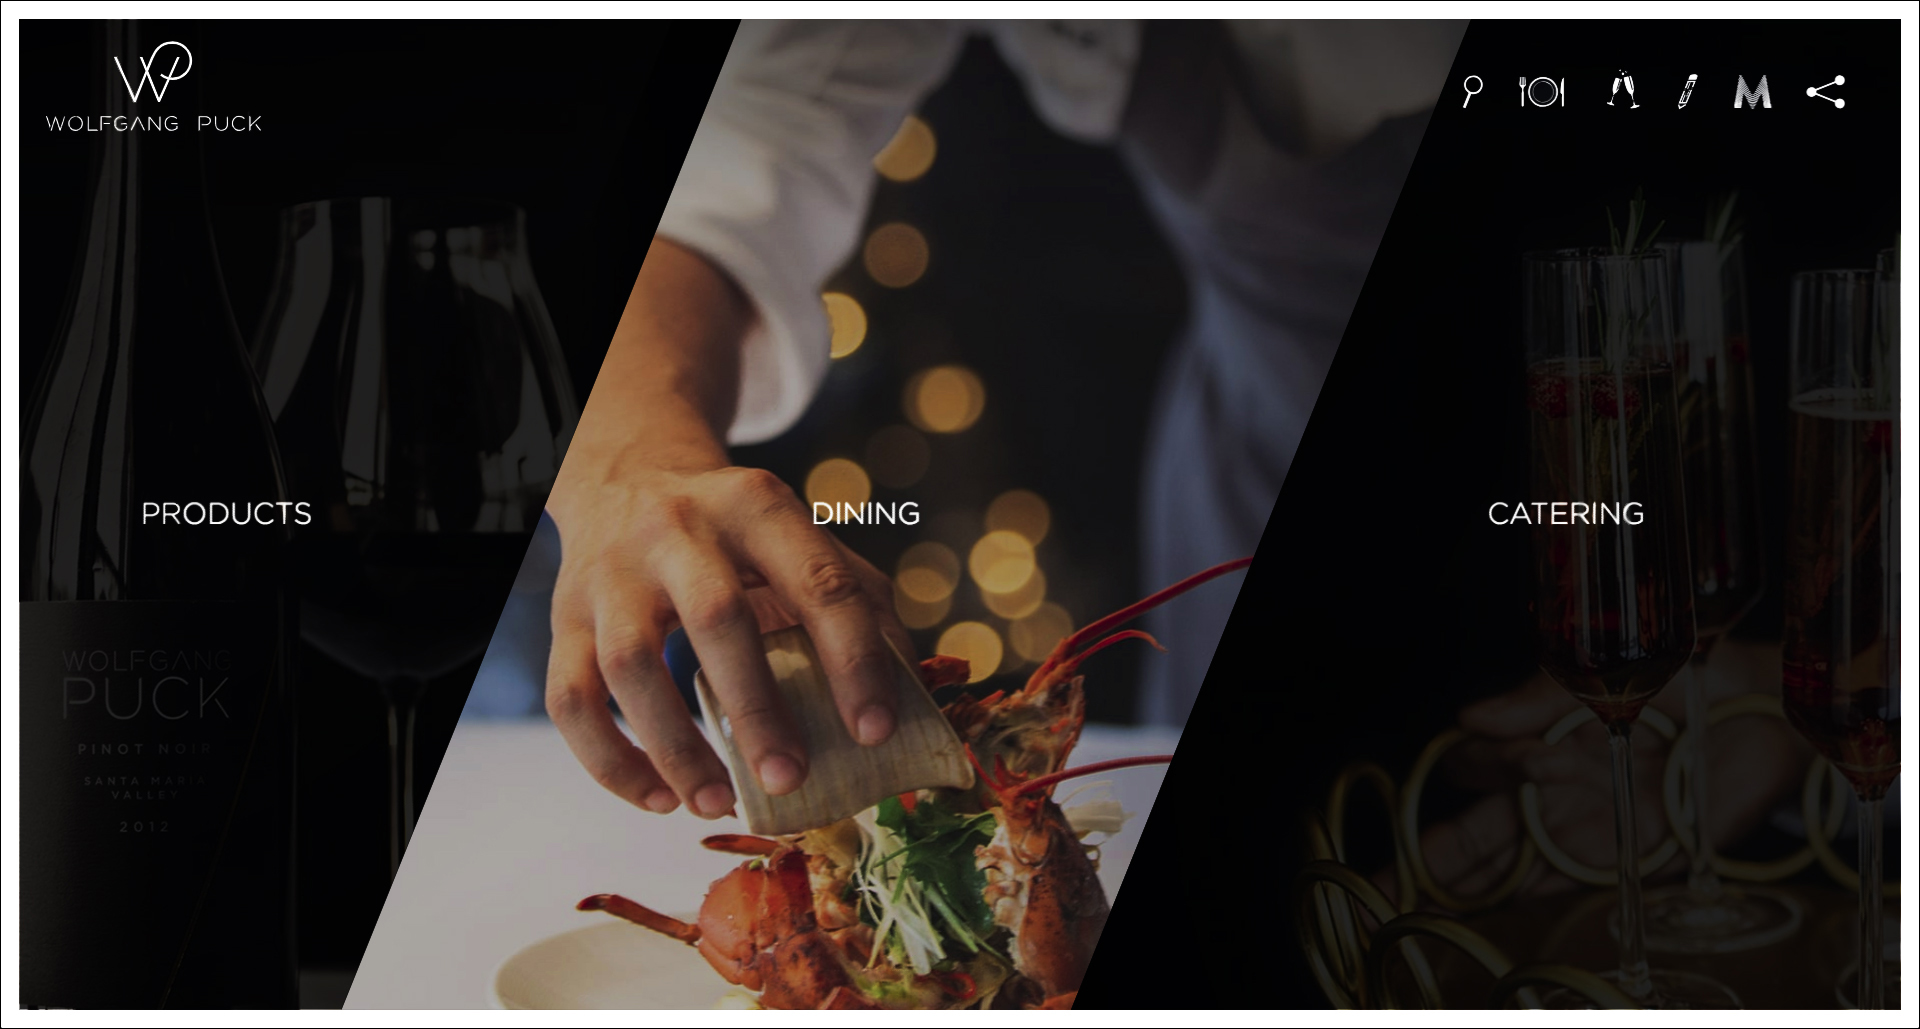 Advertising // Wolfgang Puck Homepage, Center Image, 2018